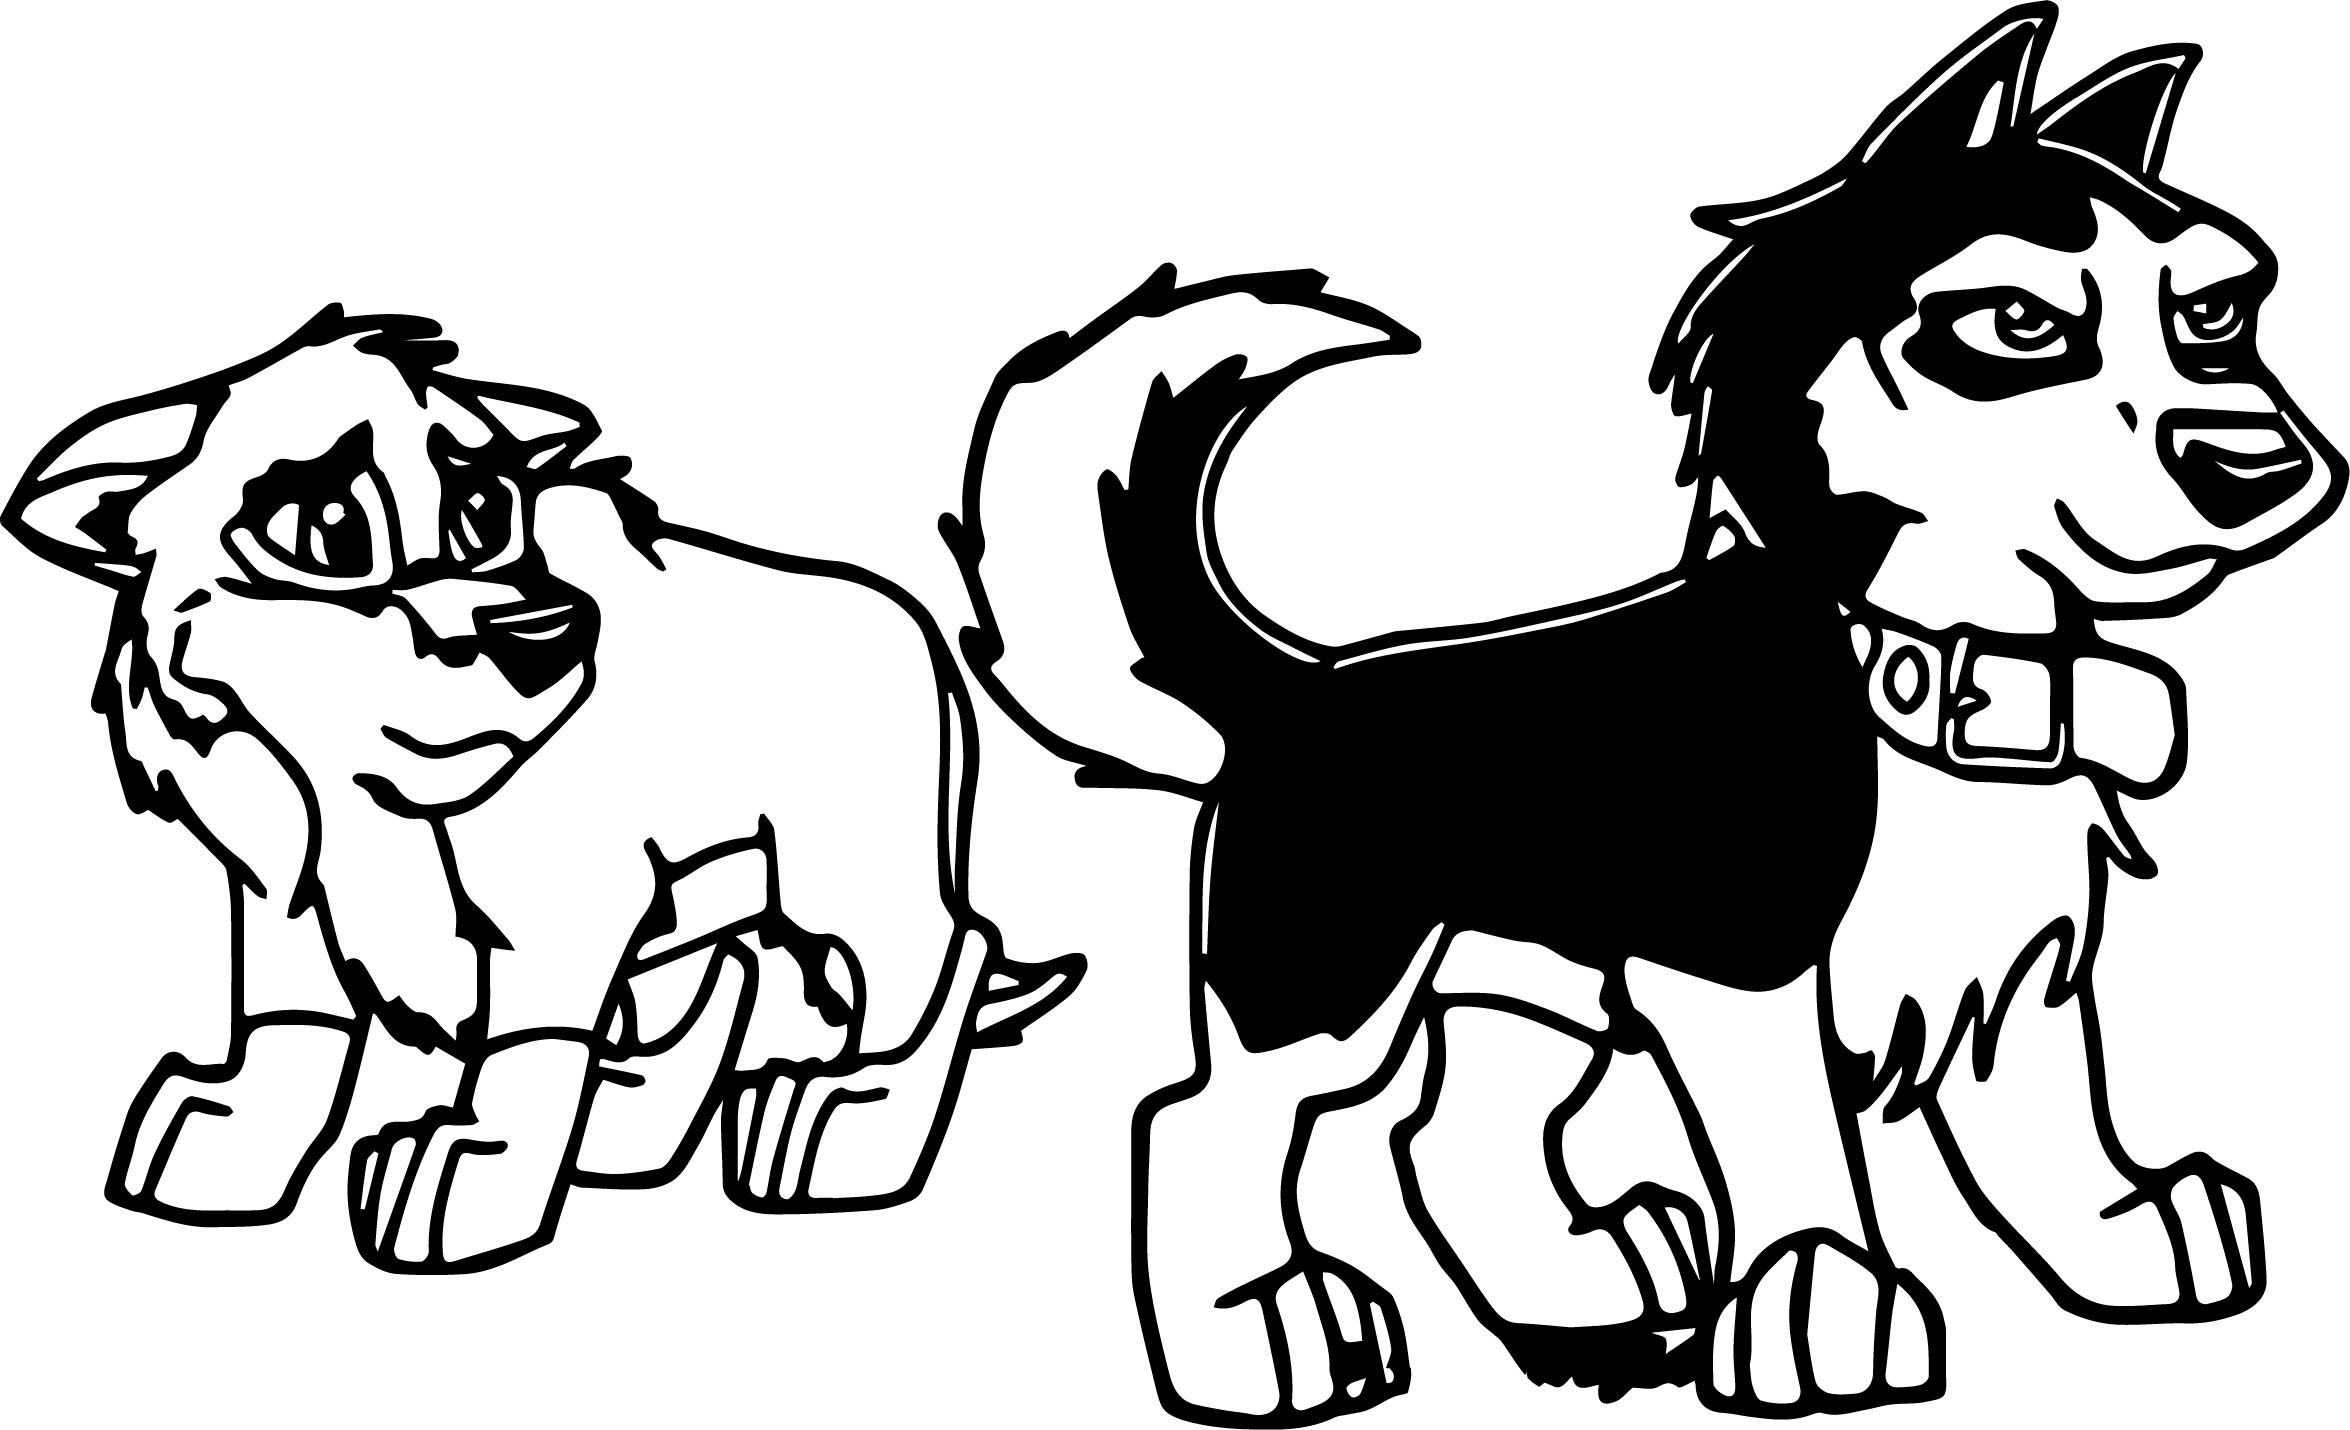 wolf pup cartoon coloring pages | Balto And Steele As Pups Wolf Coloring Page ...